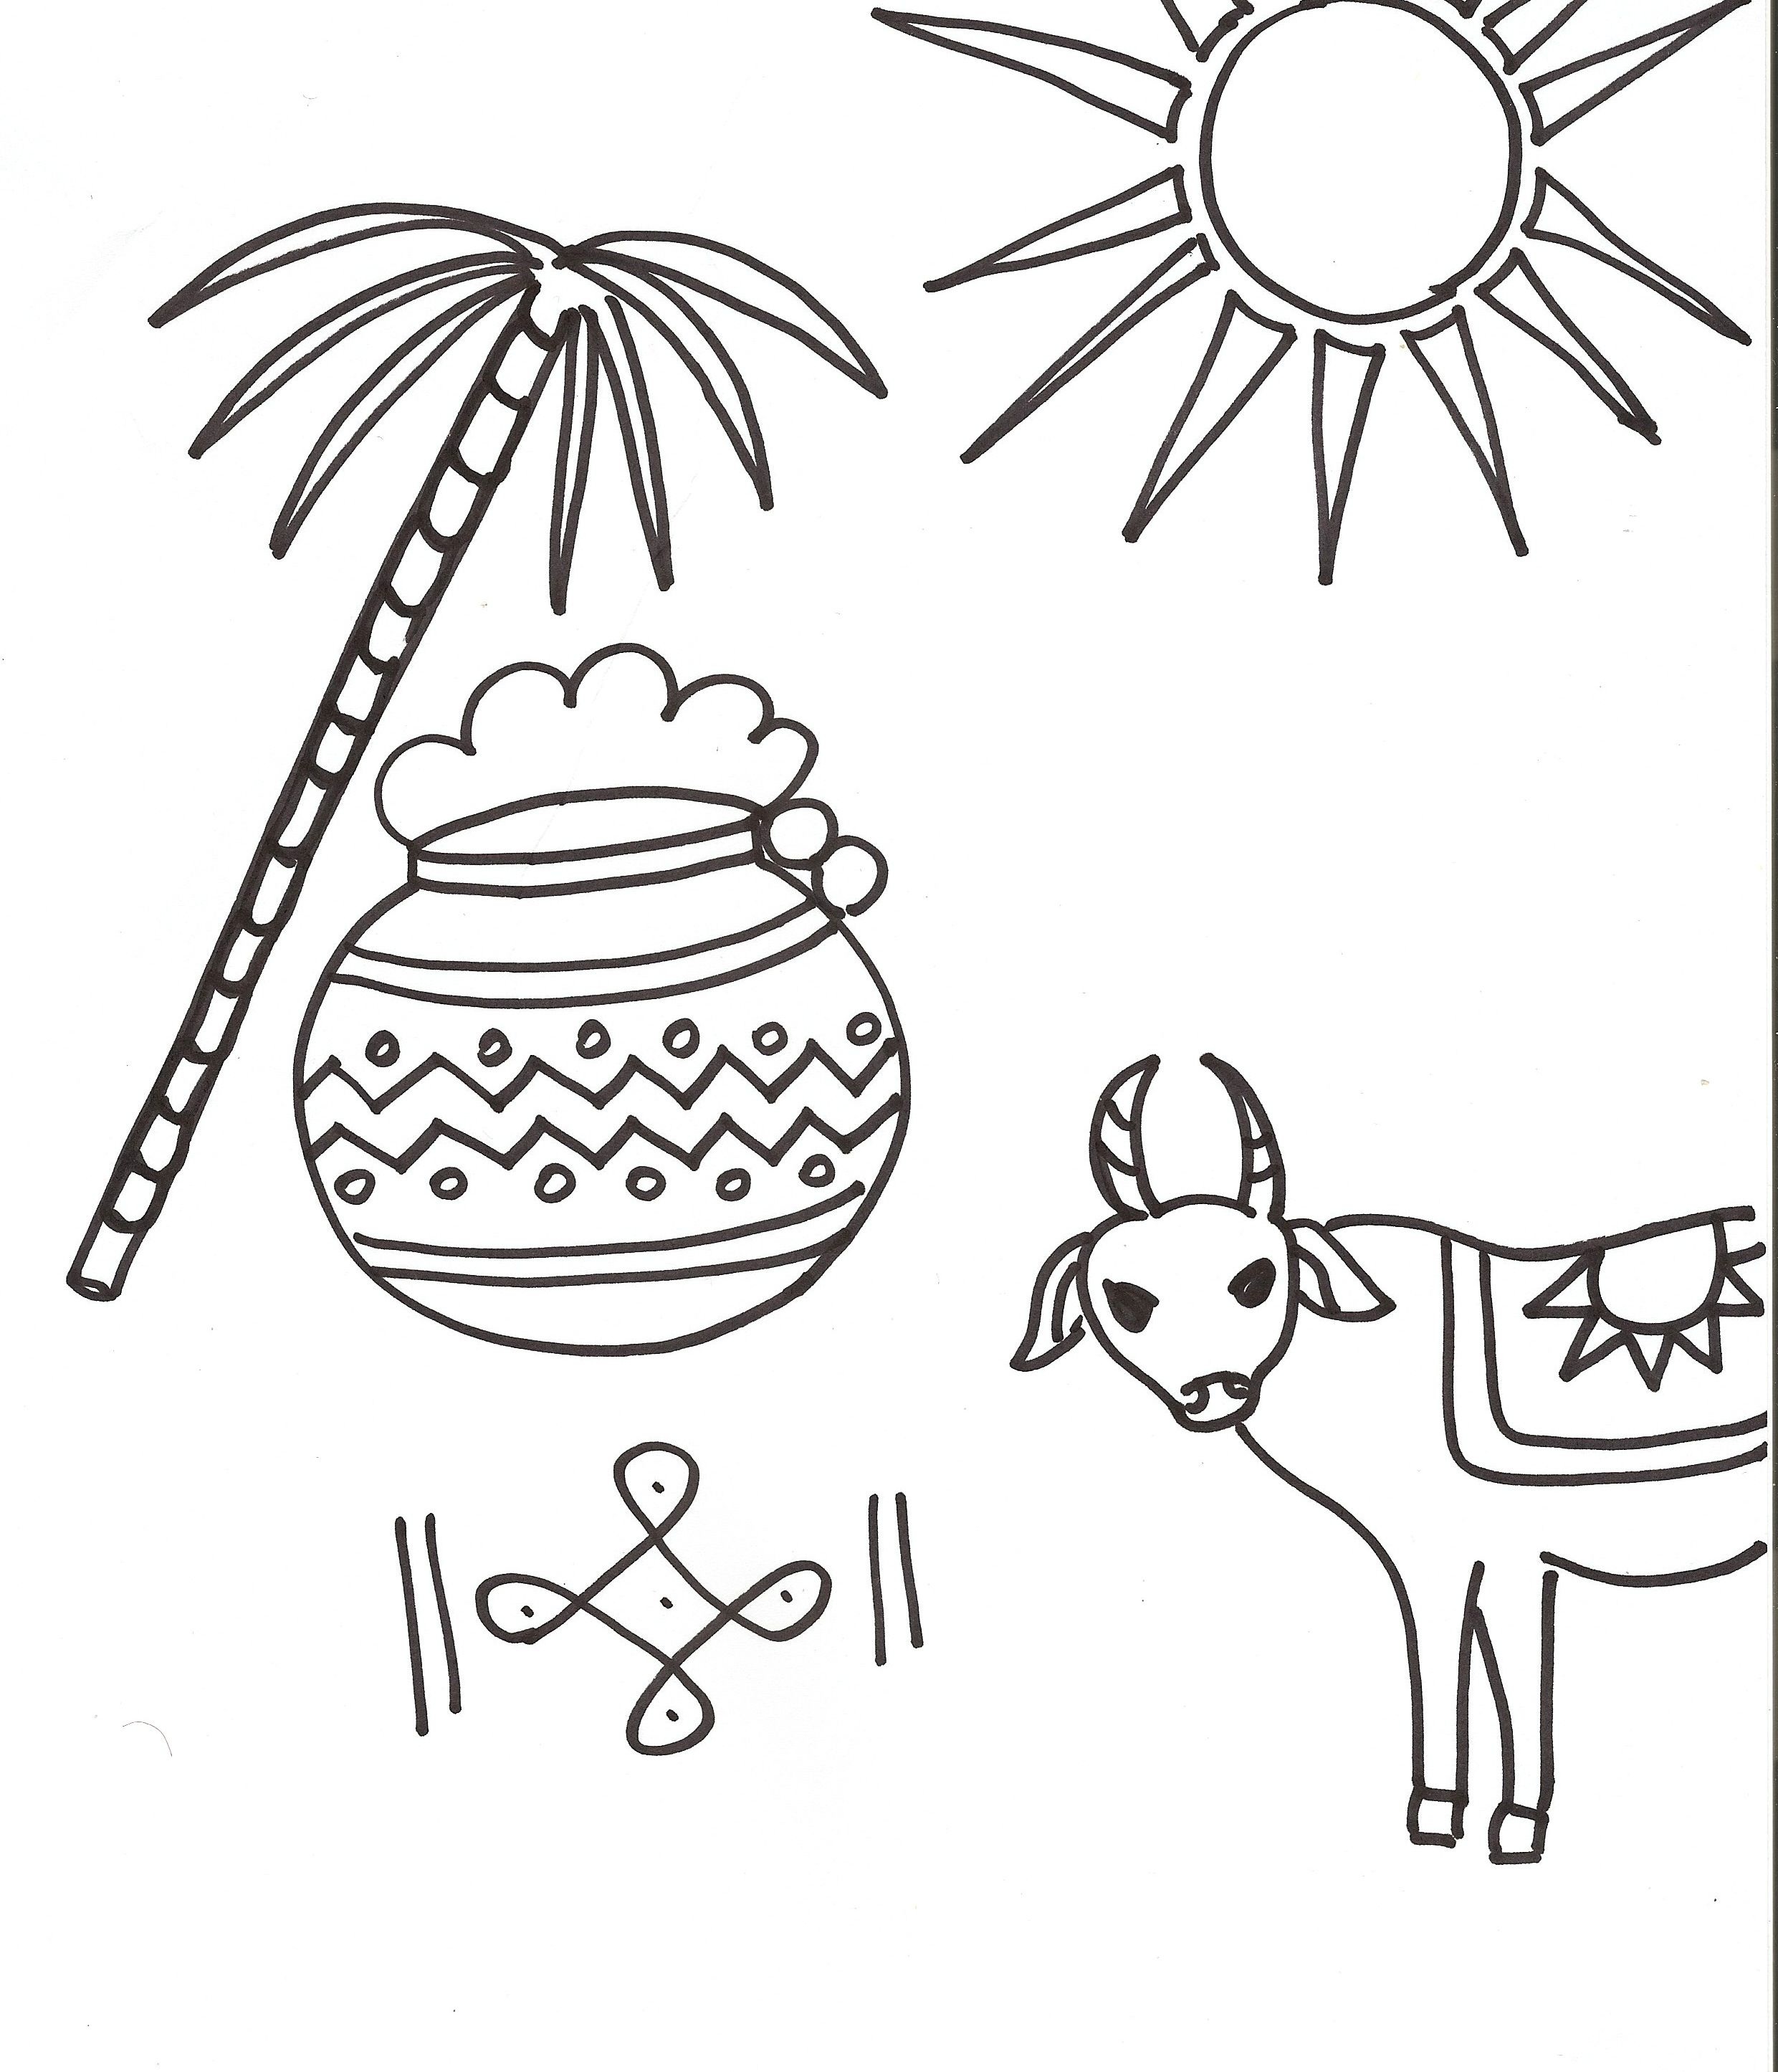 Pongal Coloring Page Download: | Indian Festivals For Kids ...